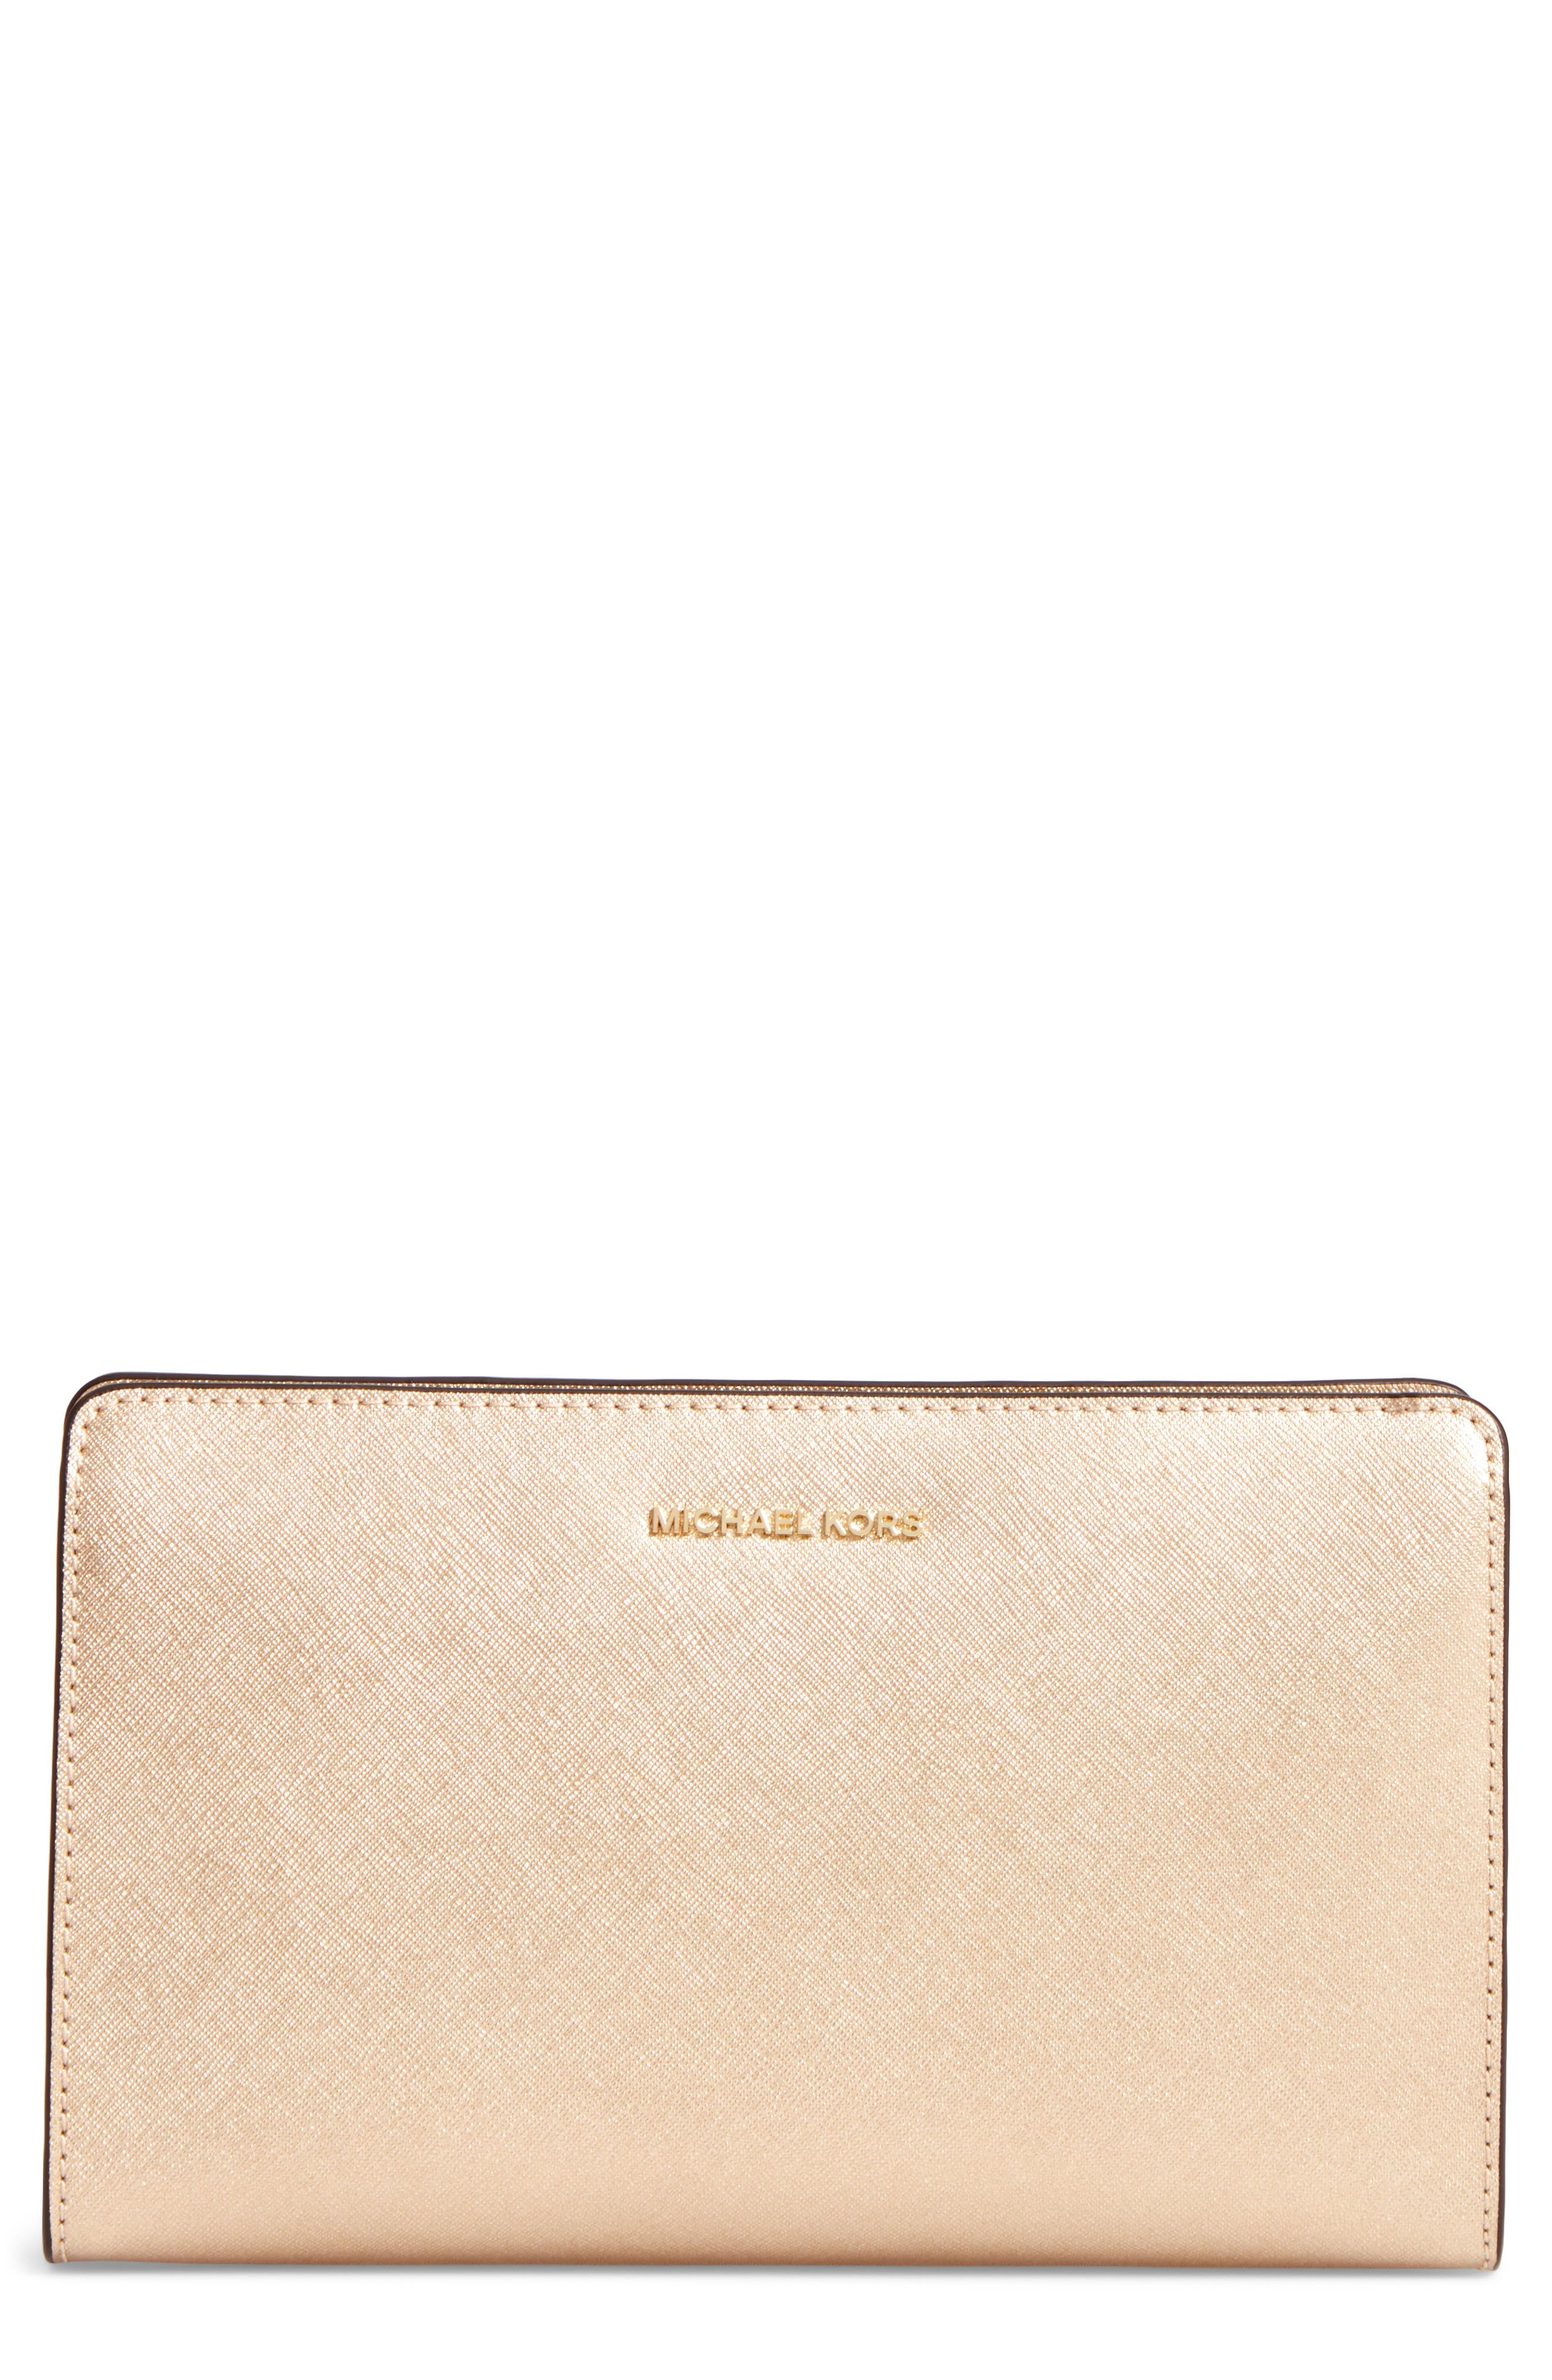 MICHAEL Michael Kors Large Jet Set Convertible Clutch